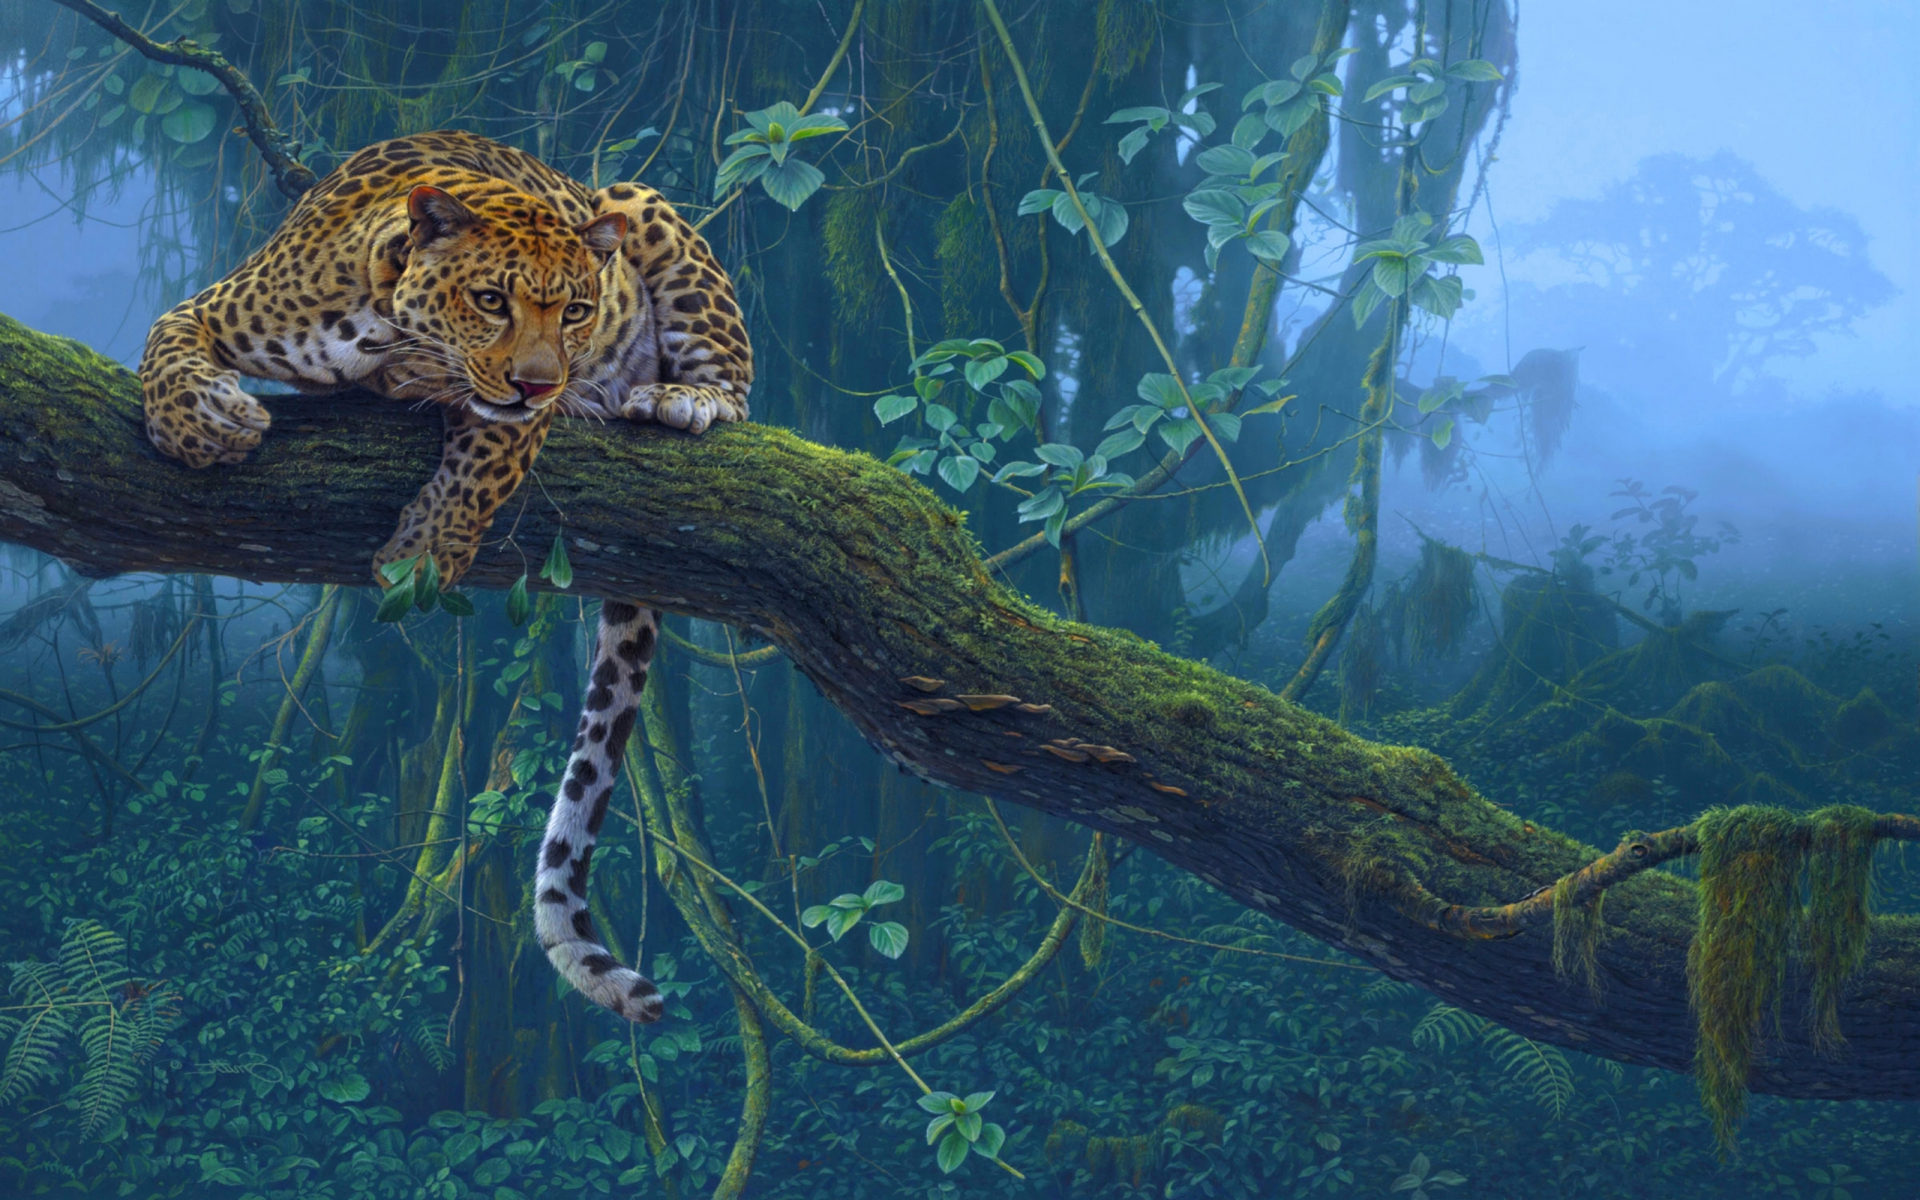 Iphone X Wallpaper 4k Live Animals Jungle Leopard On Branch Hd Wallpaper 3840x2400